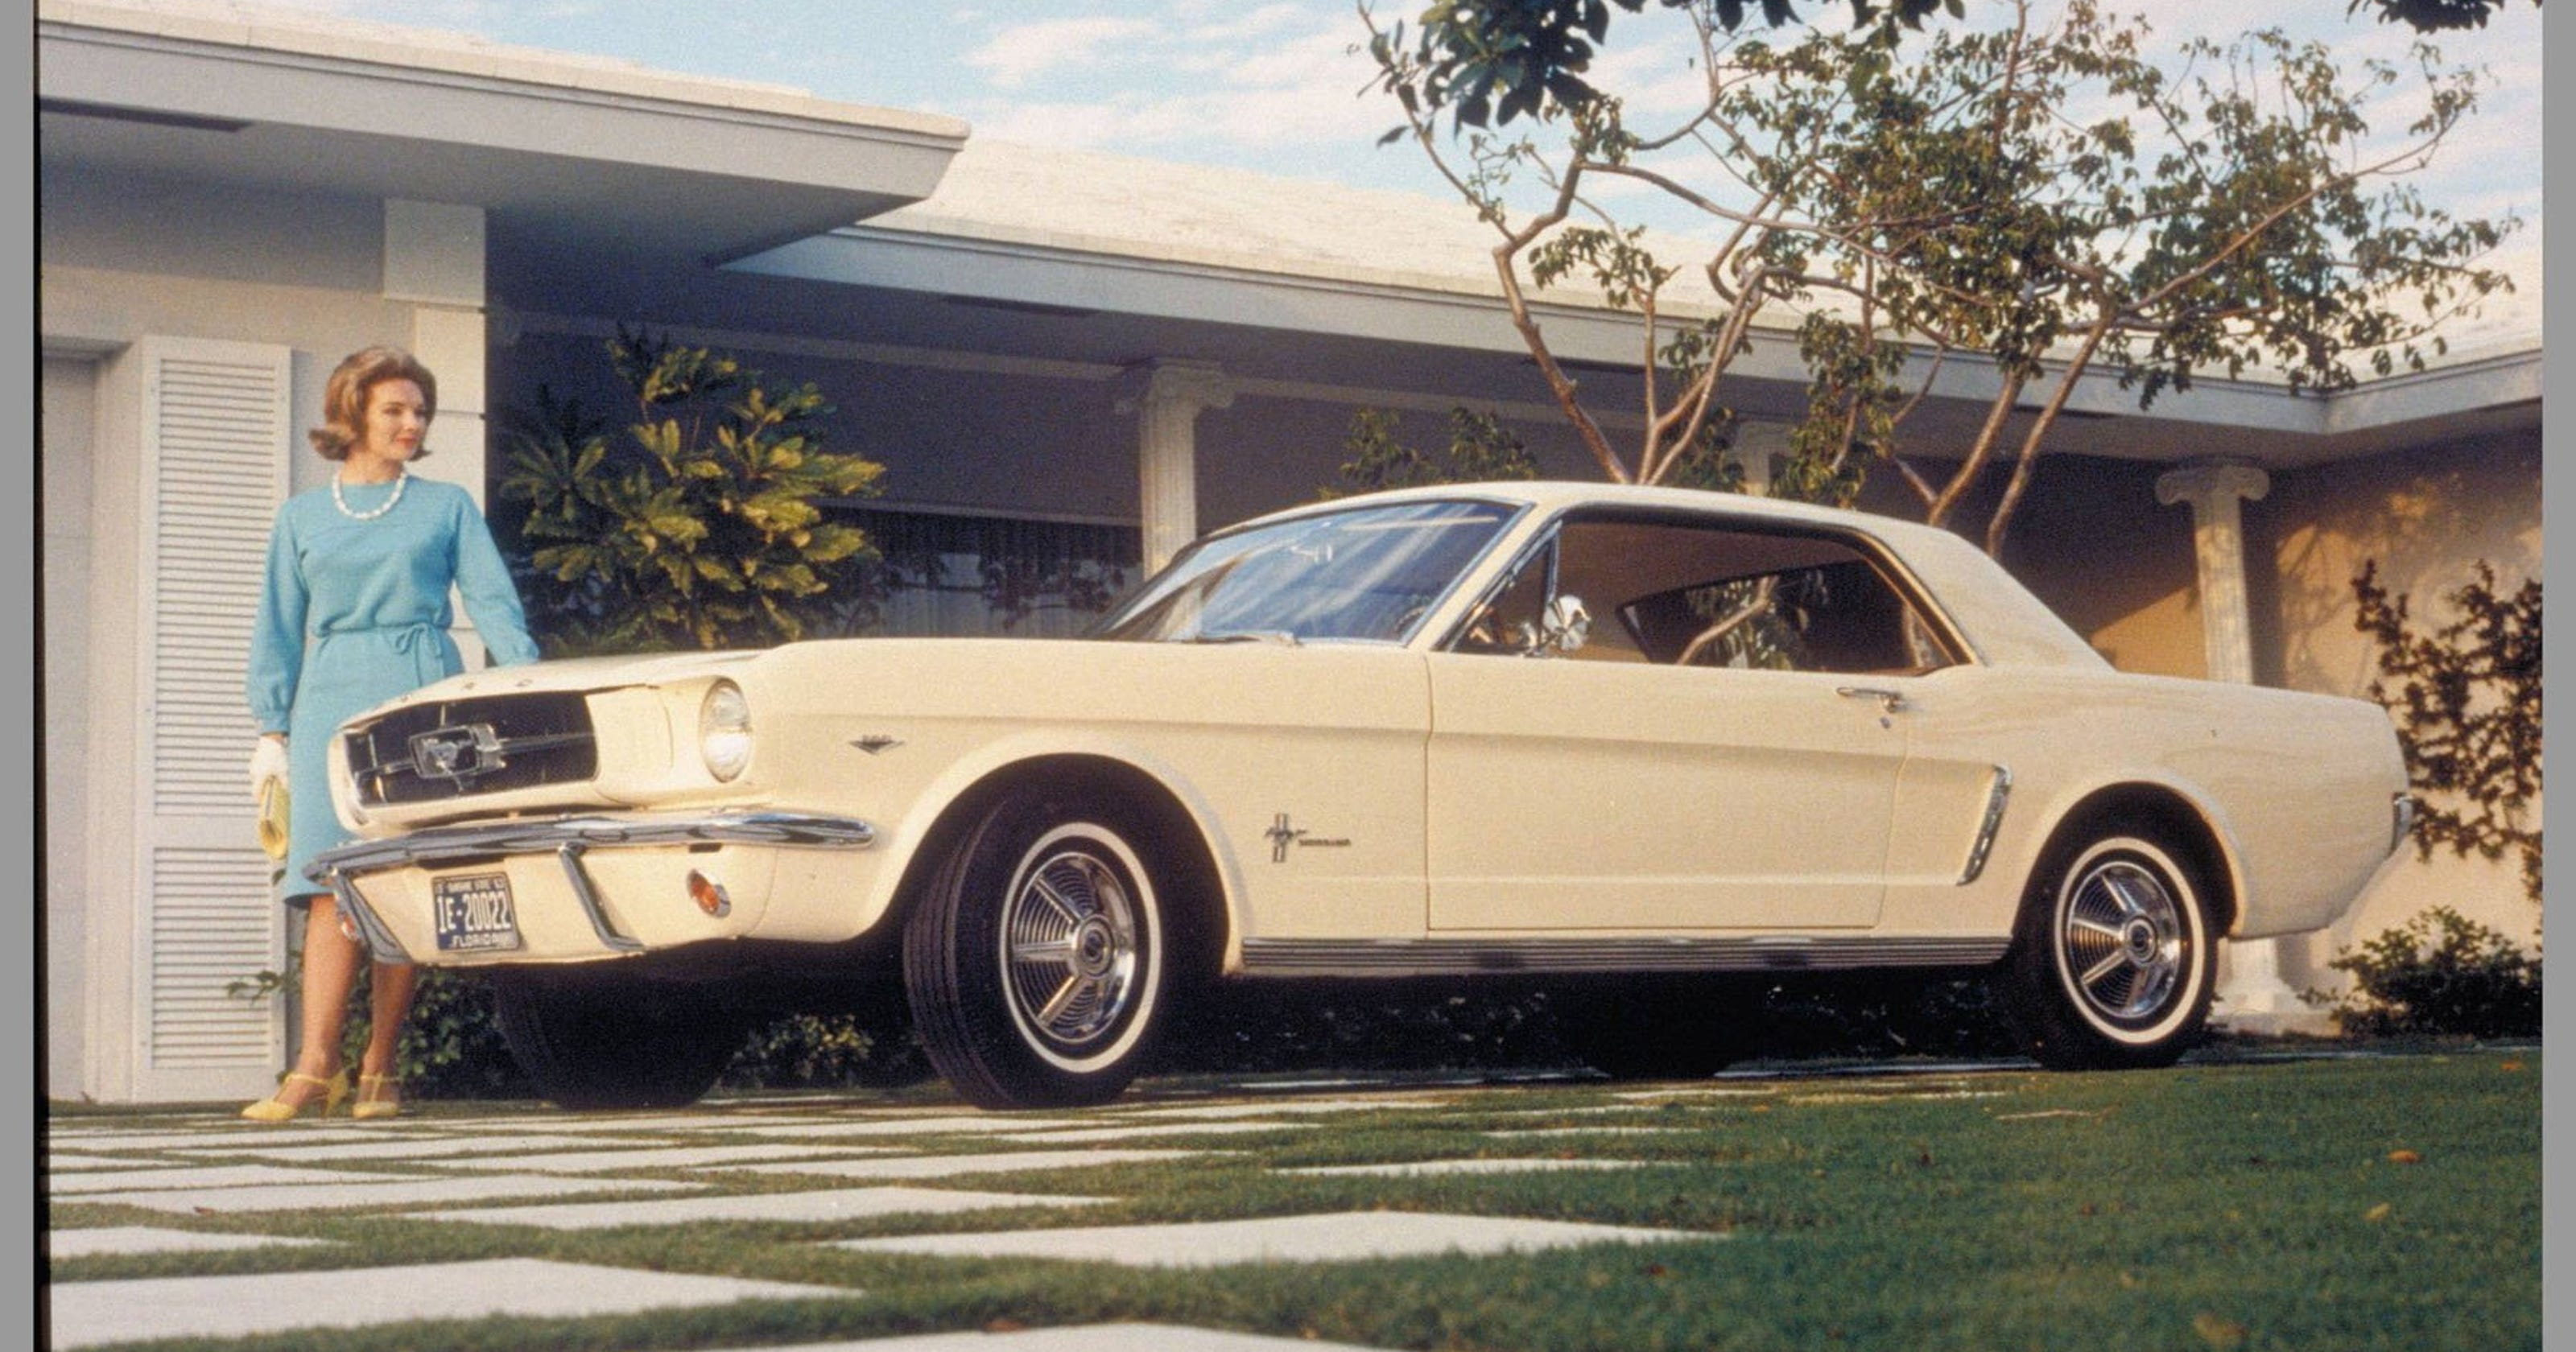 Ford mustang 11 facts you may not know